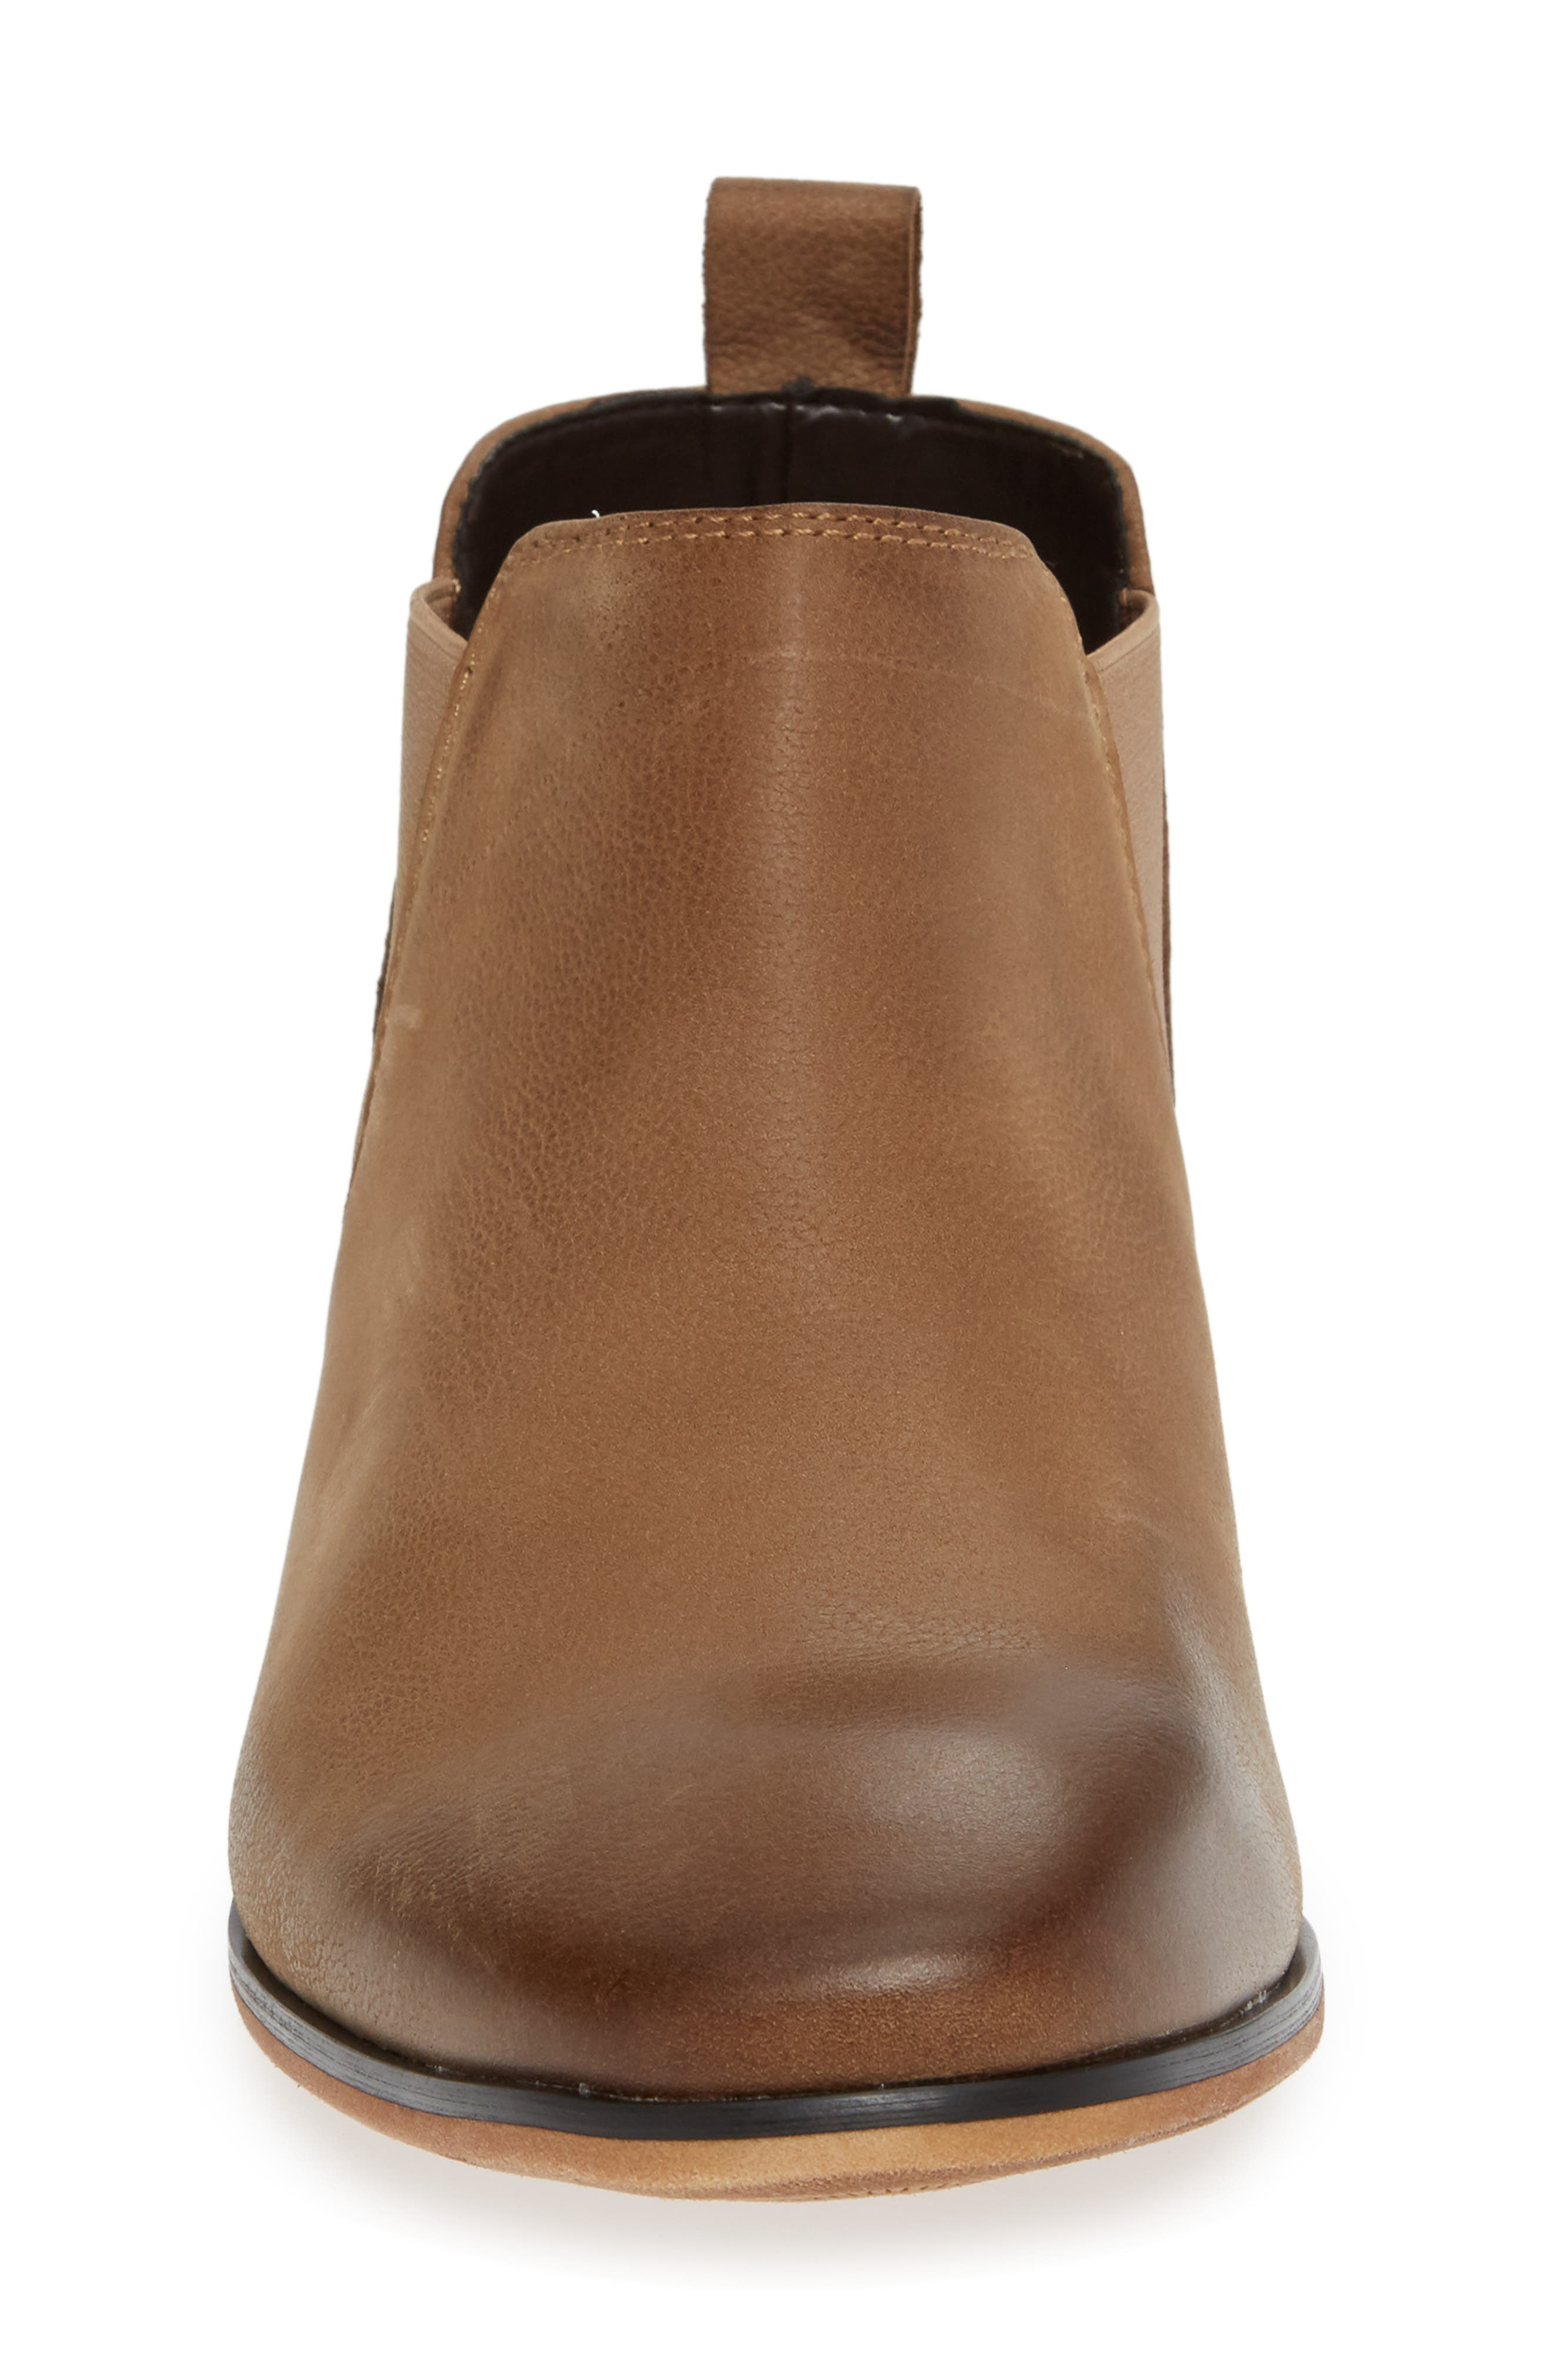 Guy Chelsea Boot,                             Alternate thumbnail 4, color,                             234